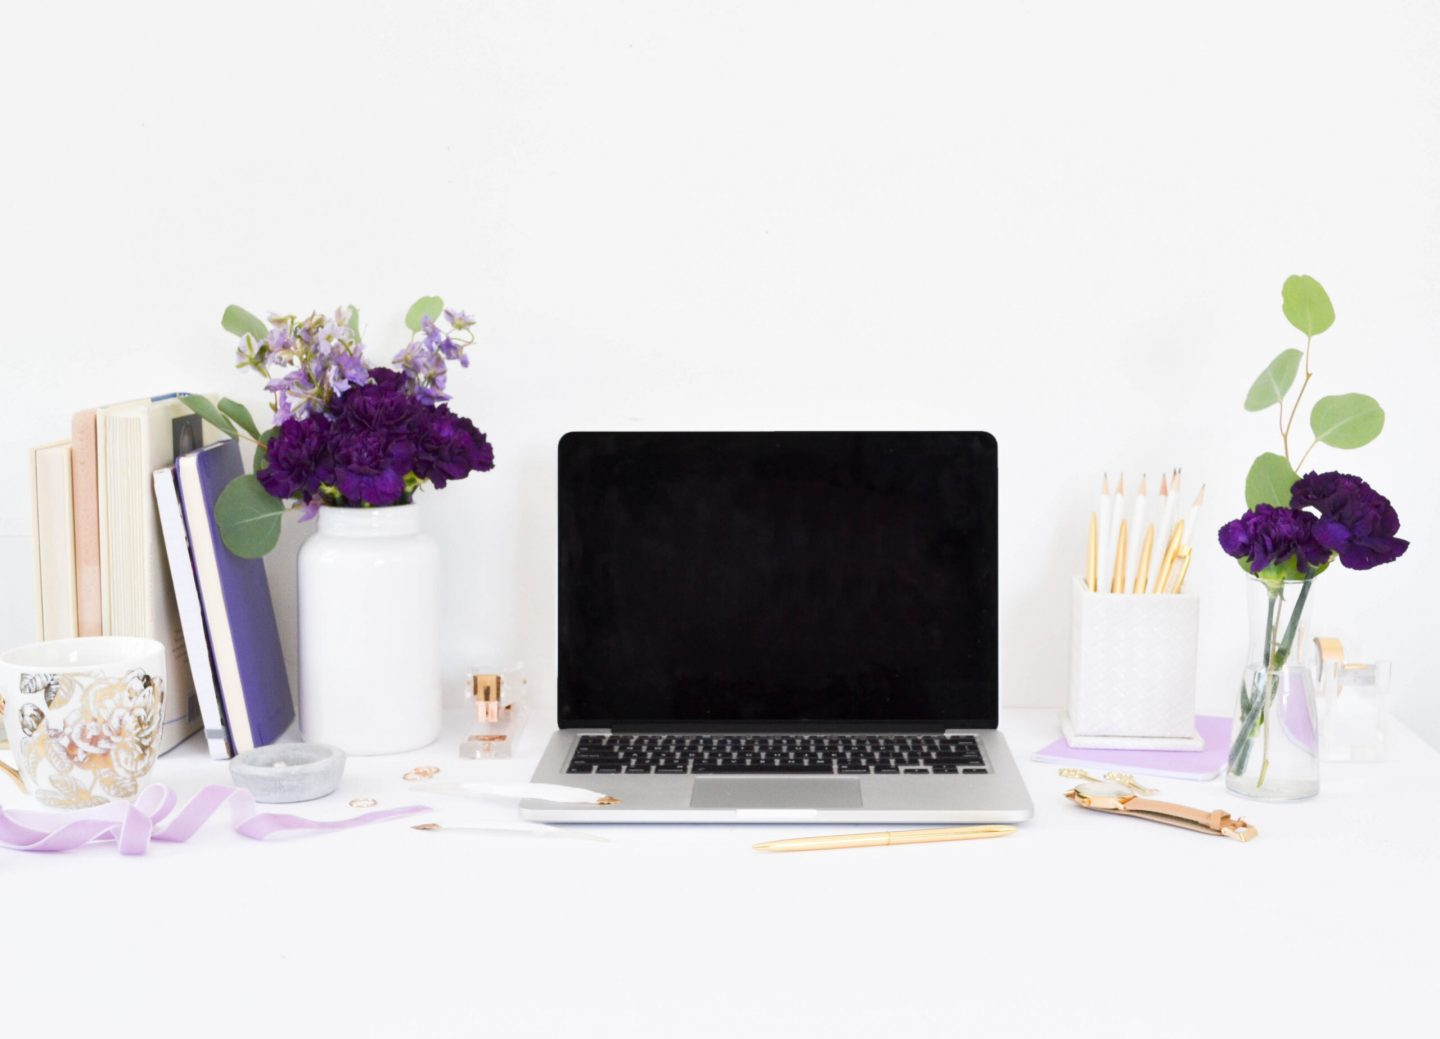 silver colored laptop on a desk with flowers, pencils and a phone